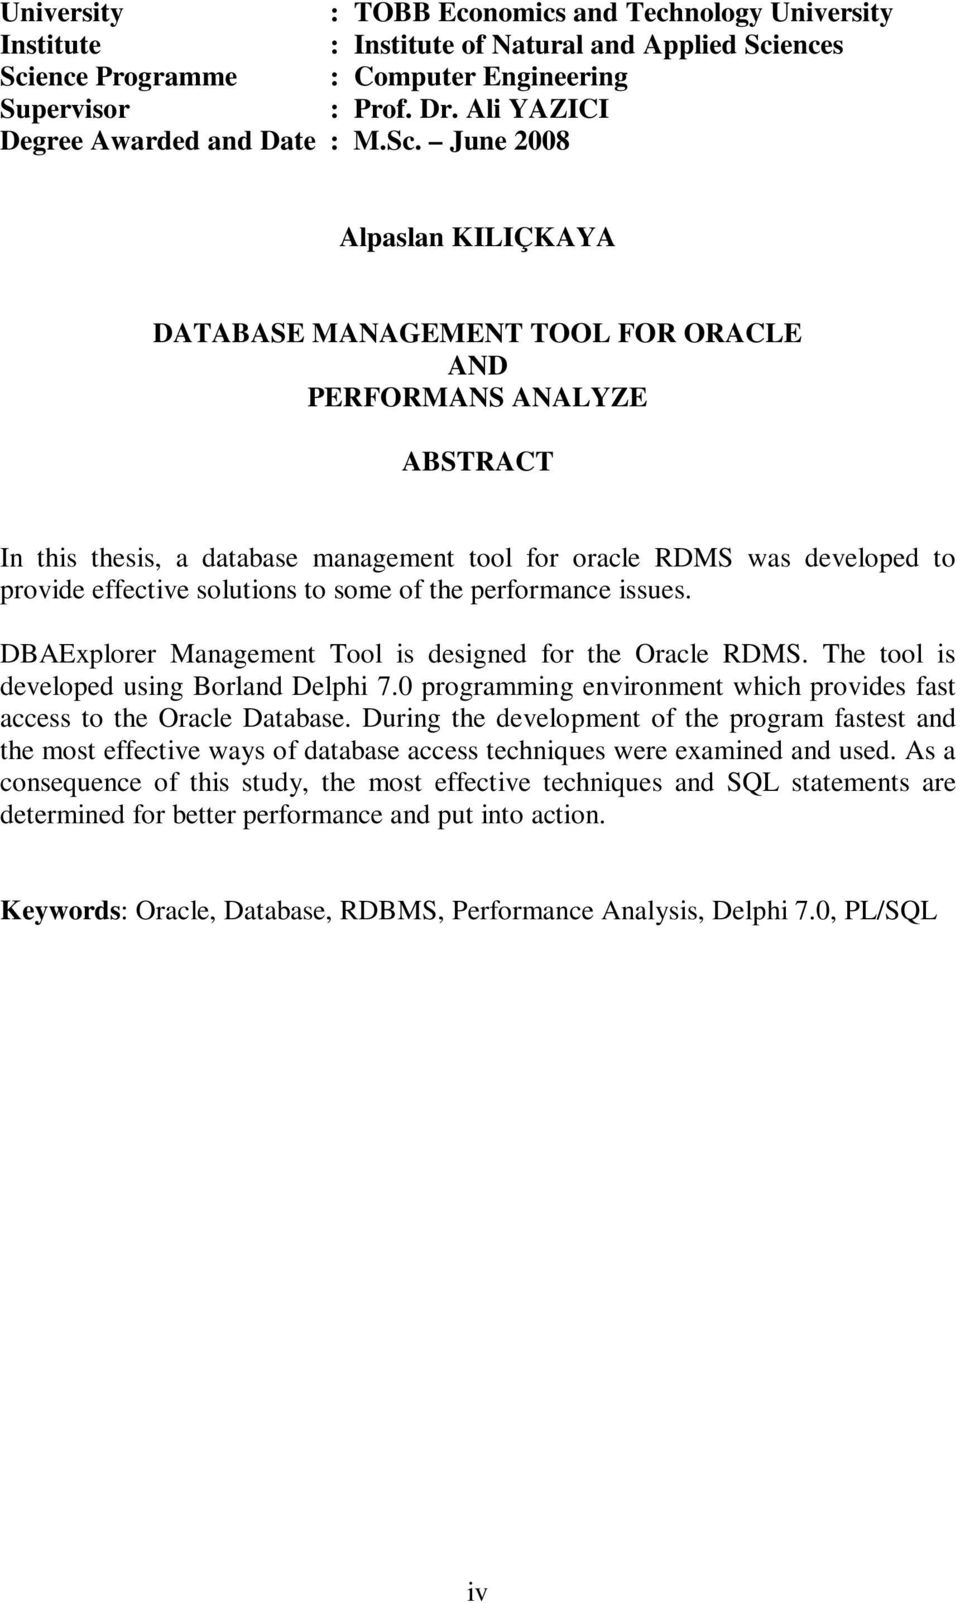 June 2008 Alpaslan KILIÇKAYA DATABASE MANAGEMENT TOOL FOR ORACLE AND PERFORMANS ANALYZE ABSTRACT In this thesis, a database management tool for oracle RDMS was developed to provide effective